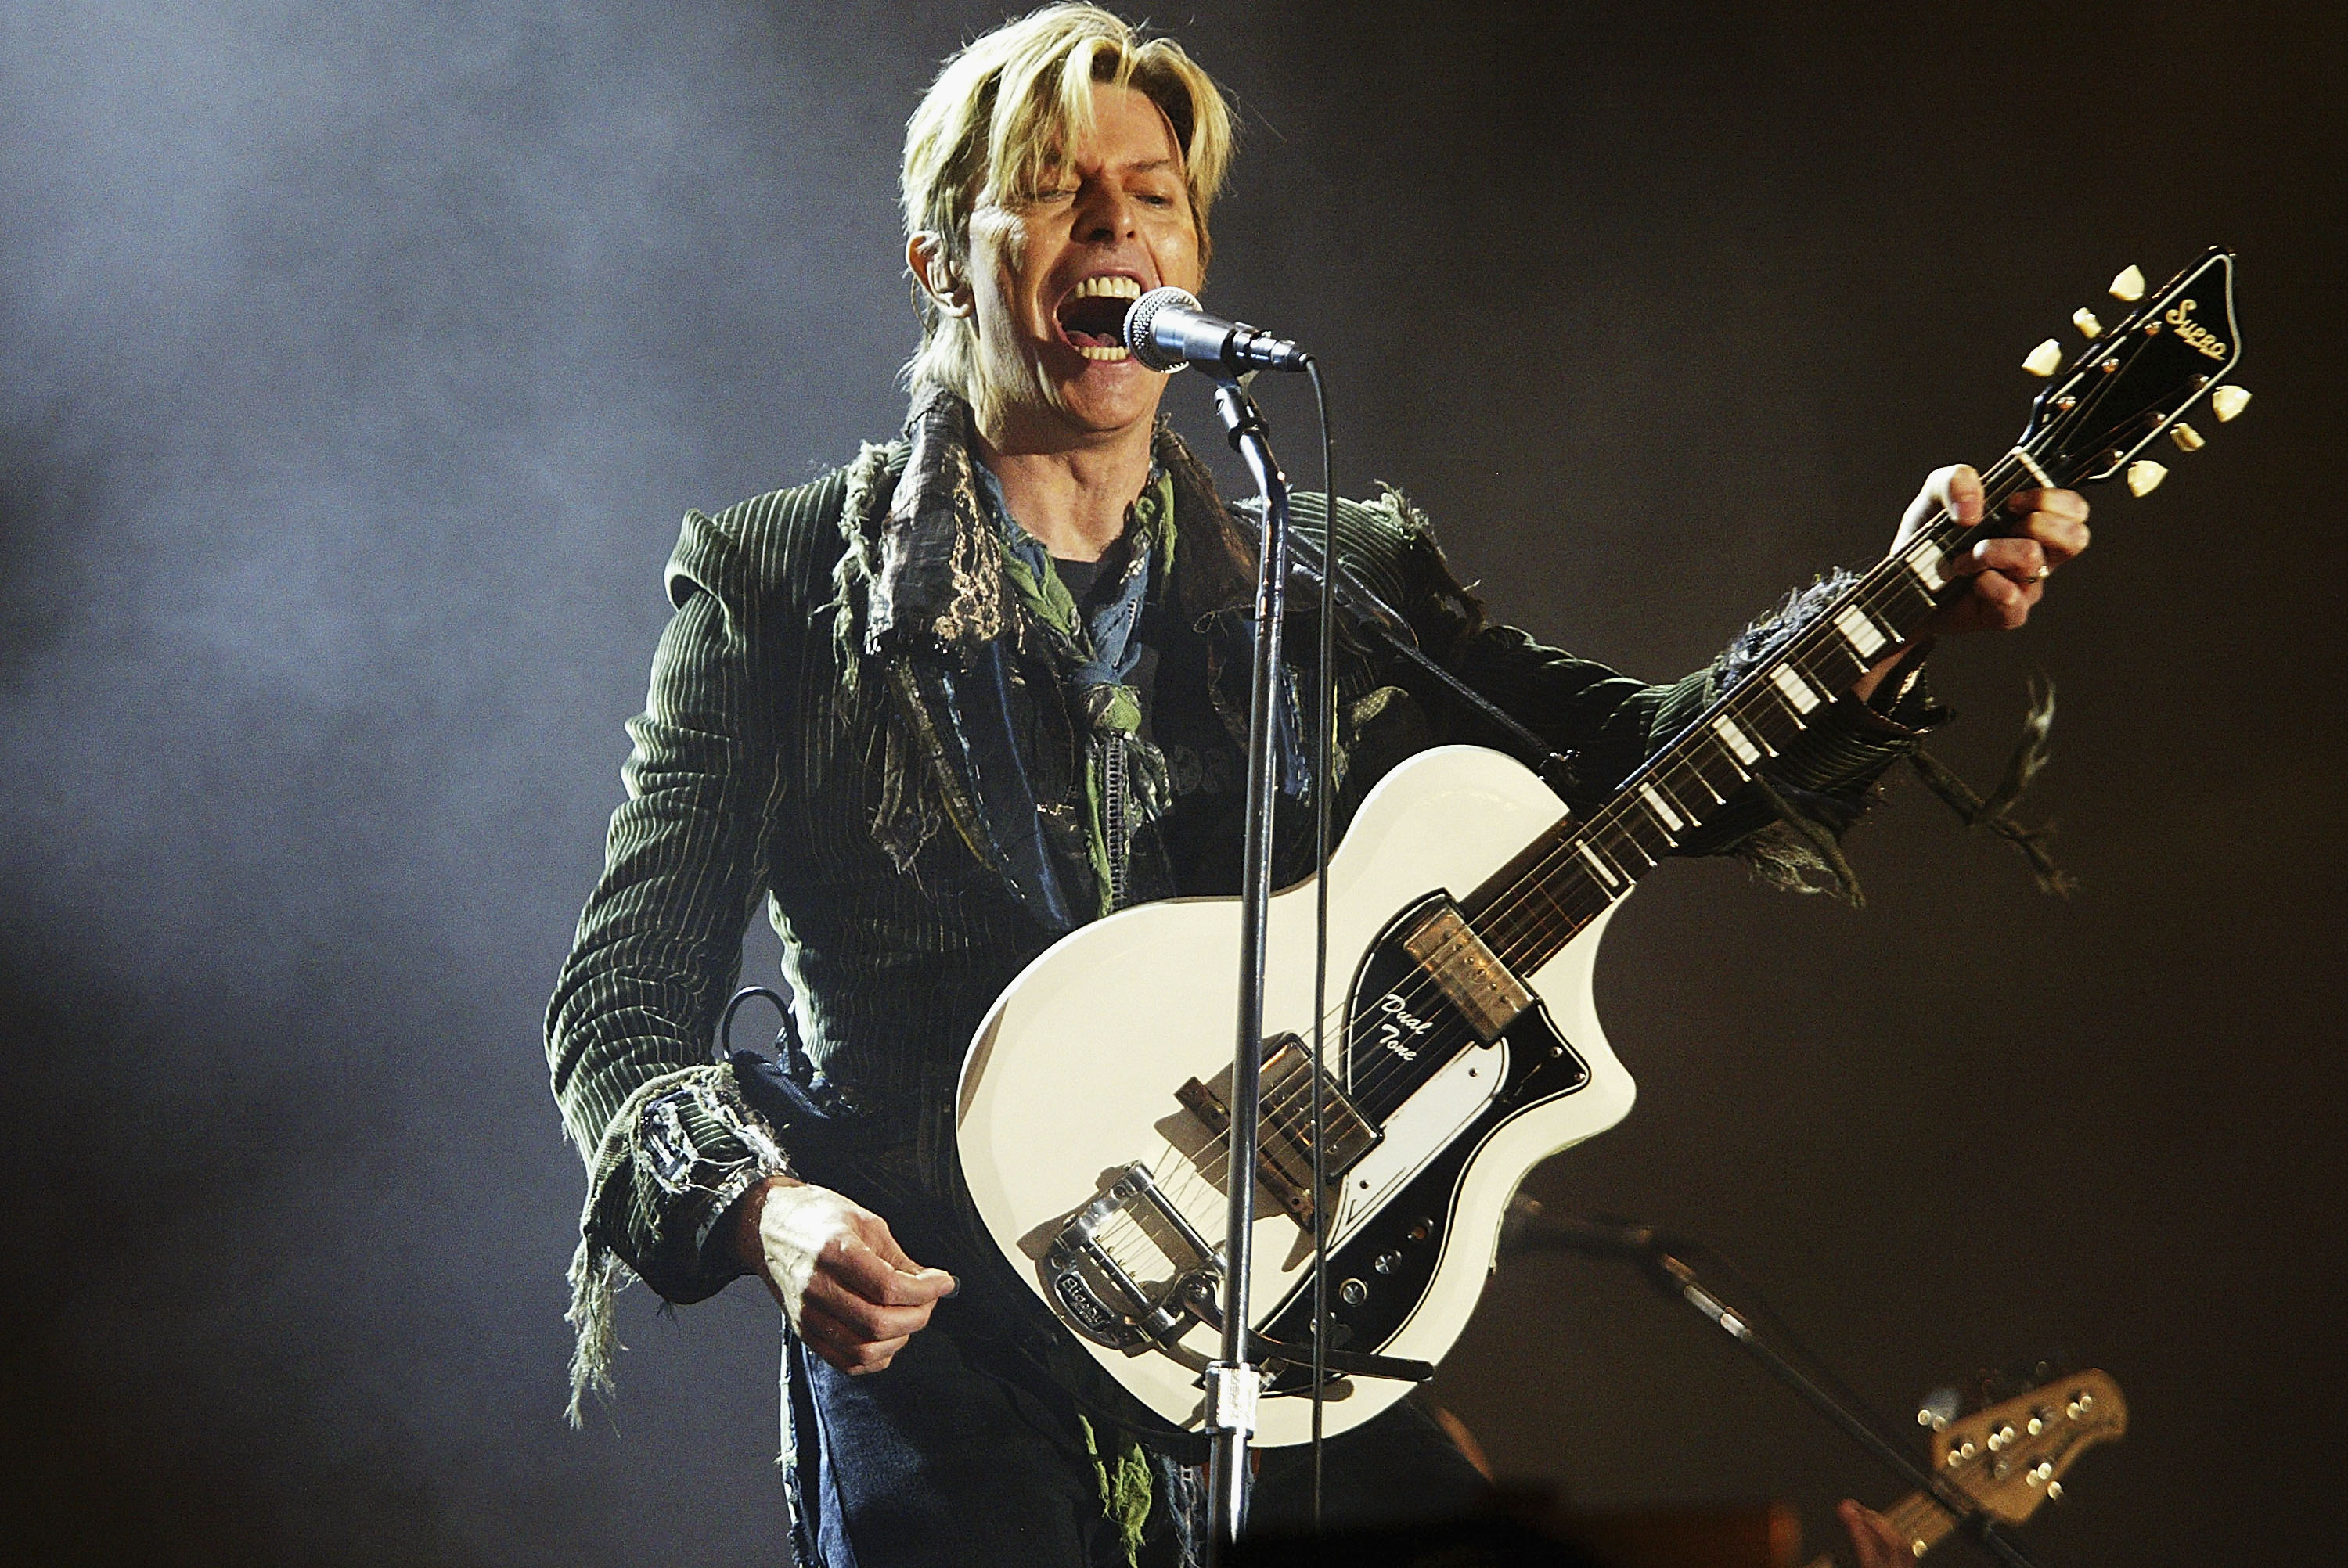 David Bowie performs during the Isle of Wight Festival at Seaclose Park on June 13, 2004 in Newport, U.K.